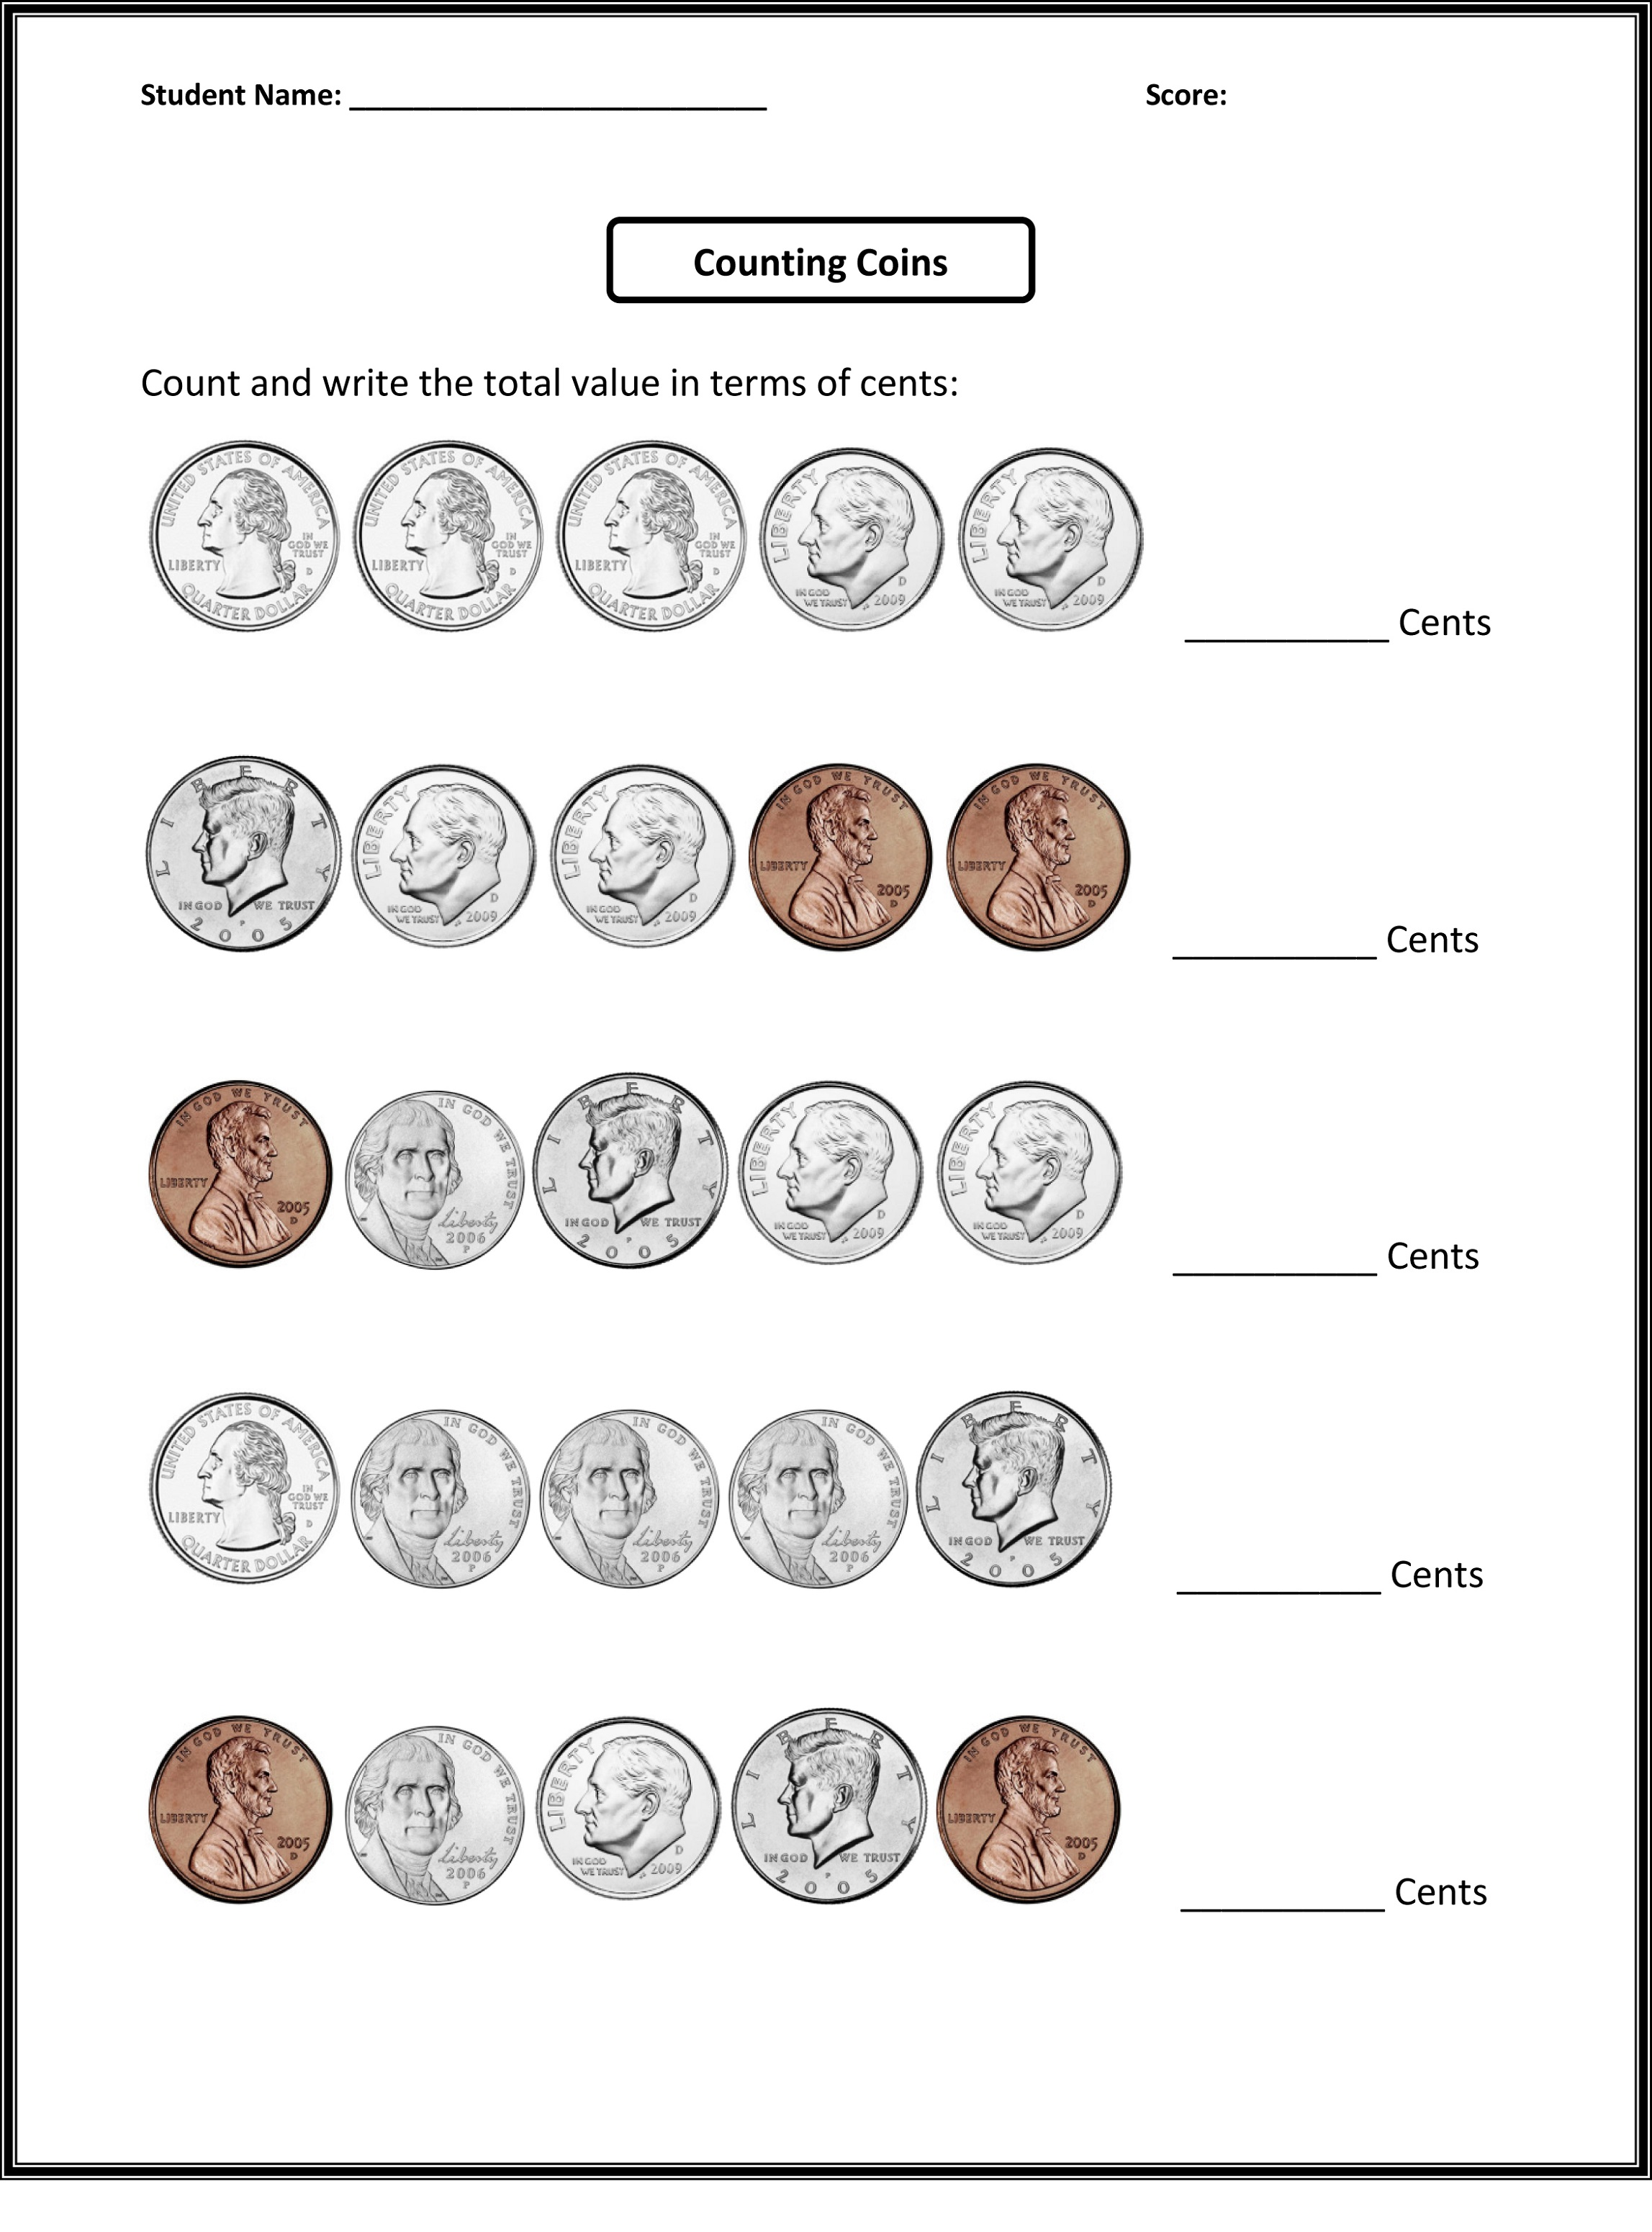 Counting Coins 4th Grade Math Fourth Grade Math Educative Printable Fourth Grade Math 4th Grade Math Worksheets 2nd Grade Math Worksheets